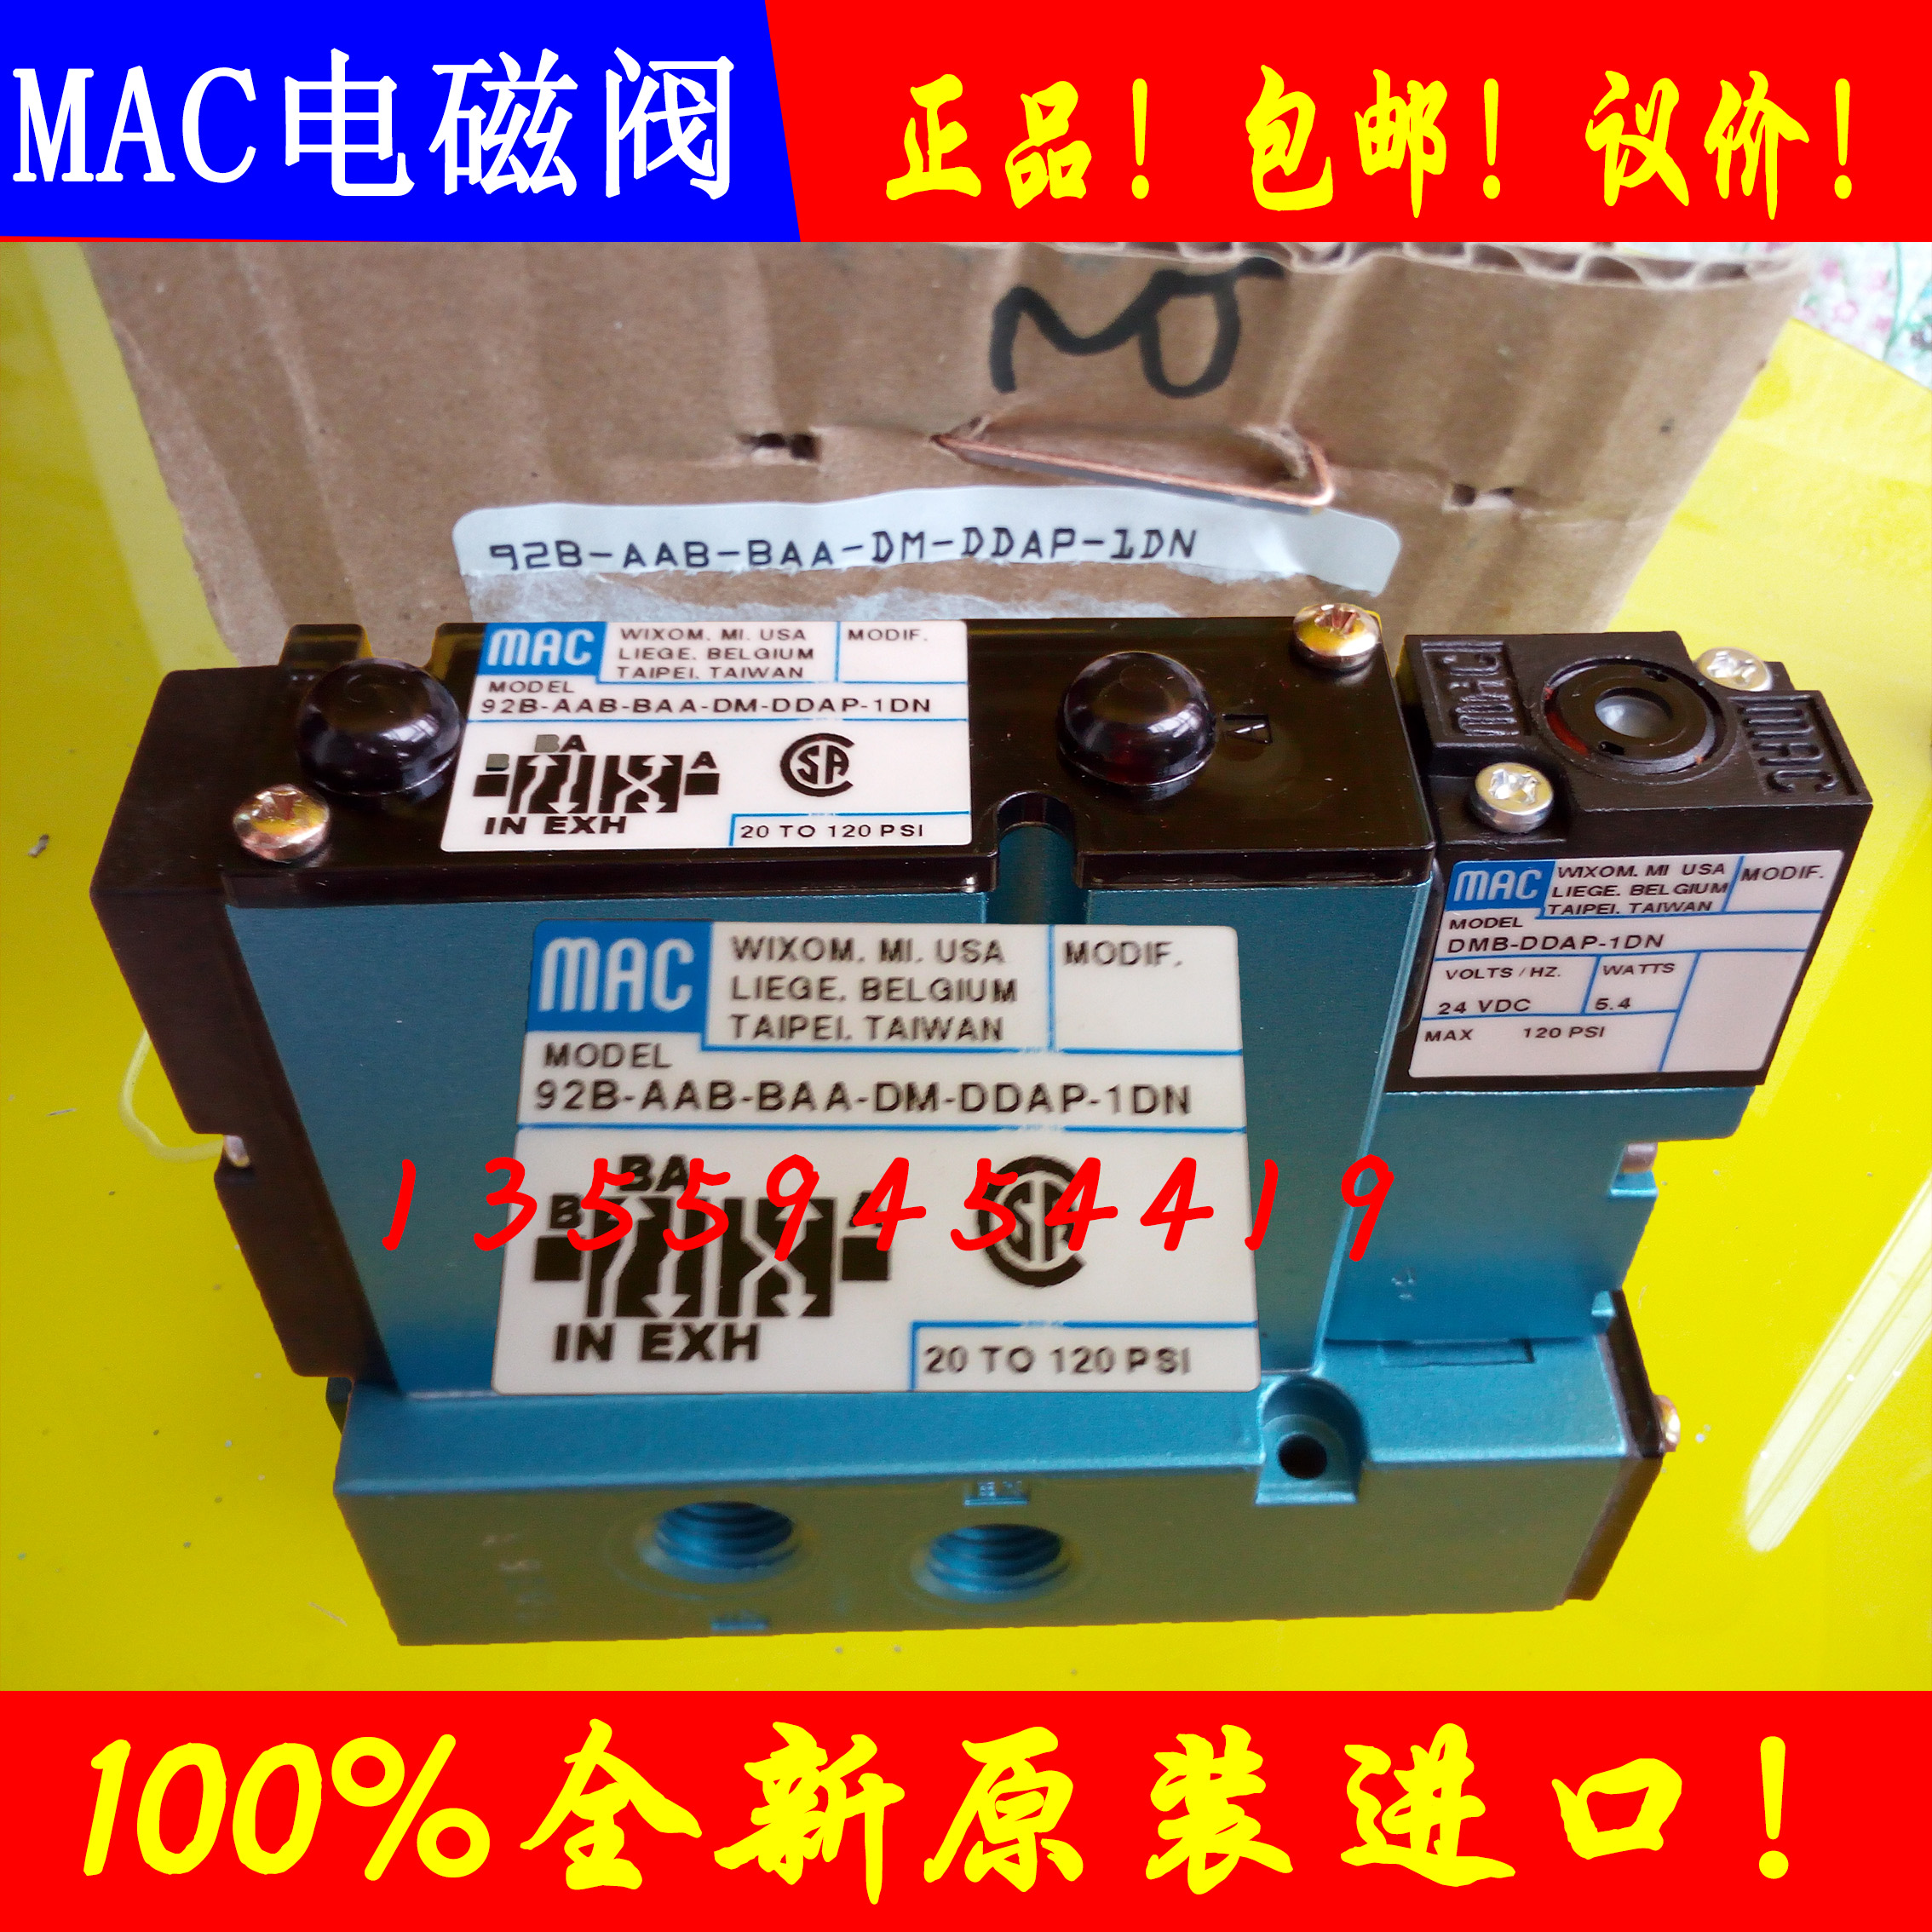 United States MAC solenoid valve 92B-AAB-BAA-DM-DDAP-1DN original genuine mail package orders